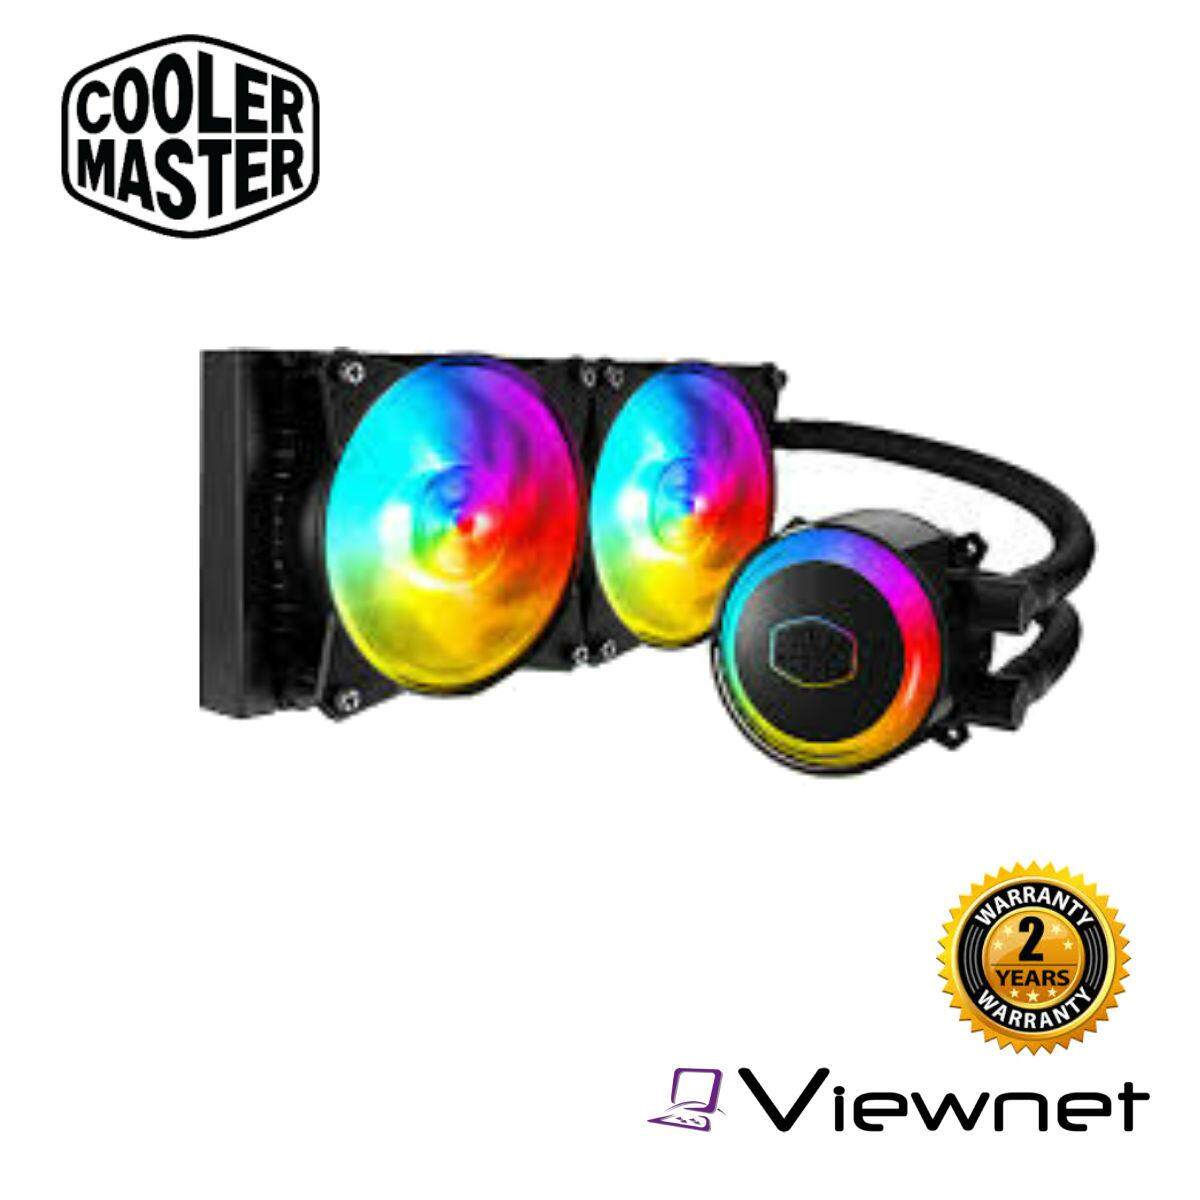 Cooler Master MasterLiquid ML240R RGB Water Cooling (MLX-D24M-A20PC-R1)